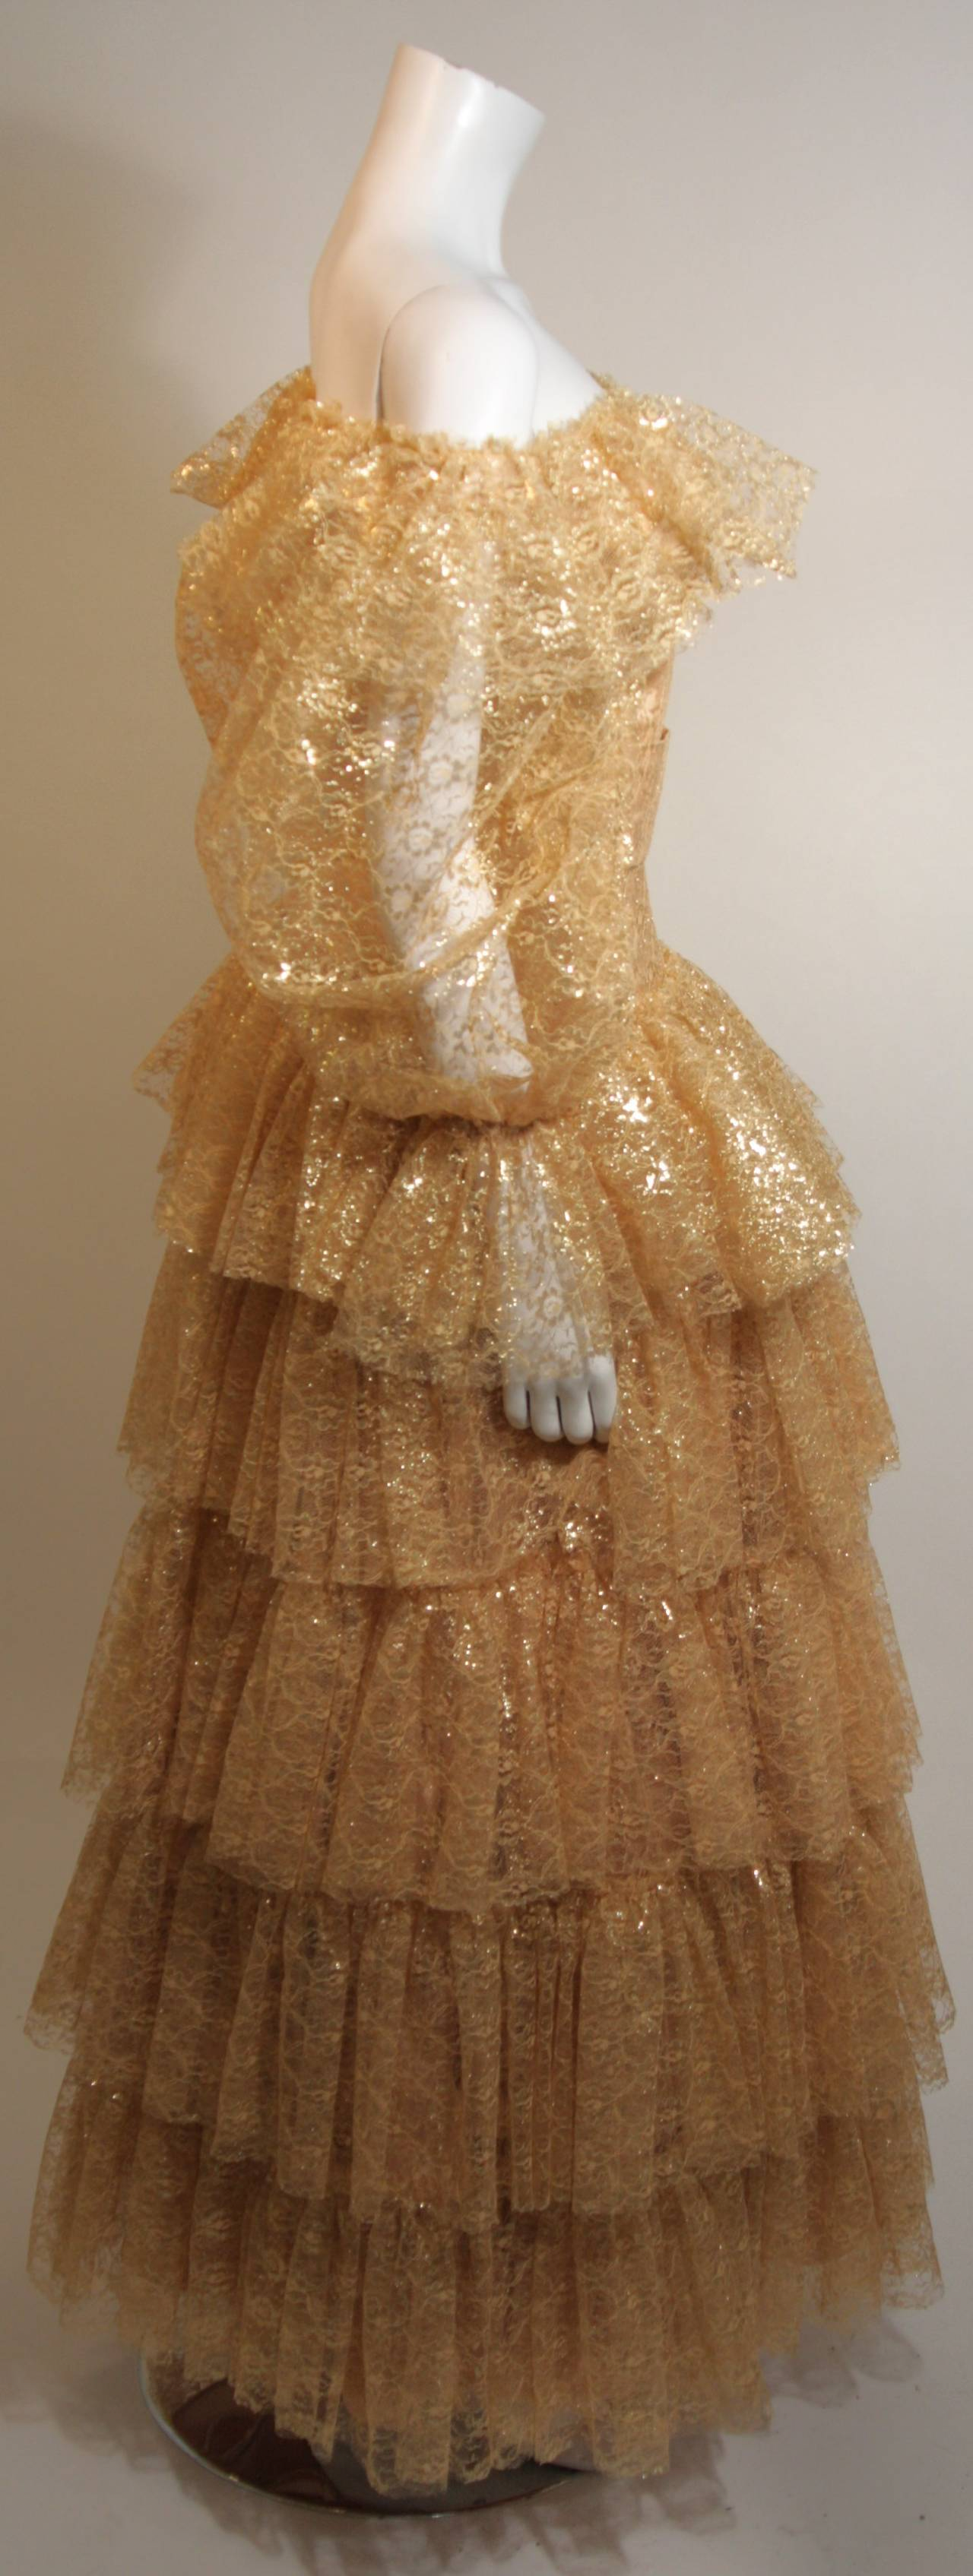 Women's Attributed to Travilla Gold Tiered Lace Ball Gown with sheer lace sleeves size 4 For Sale